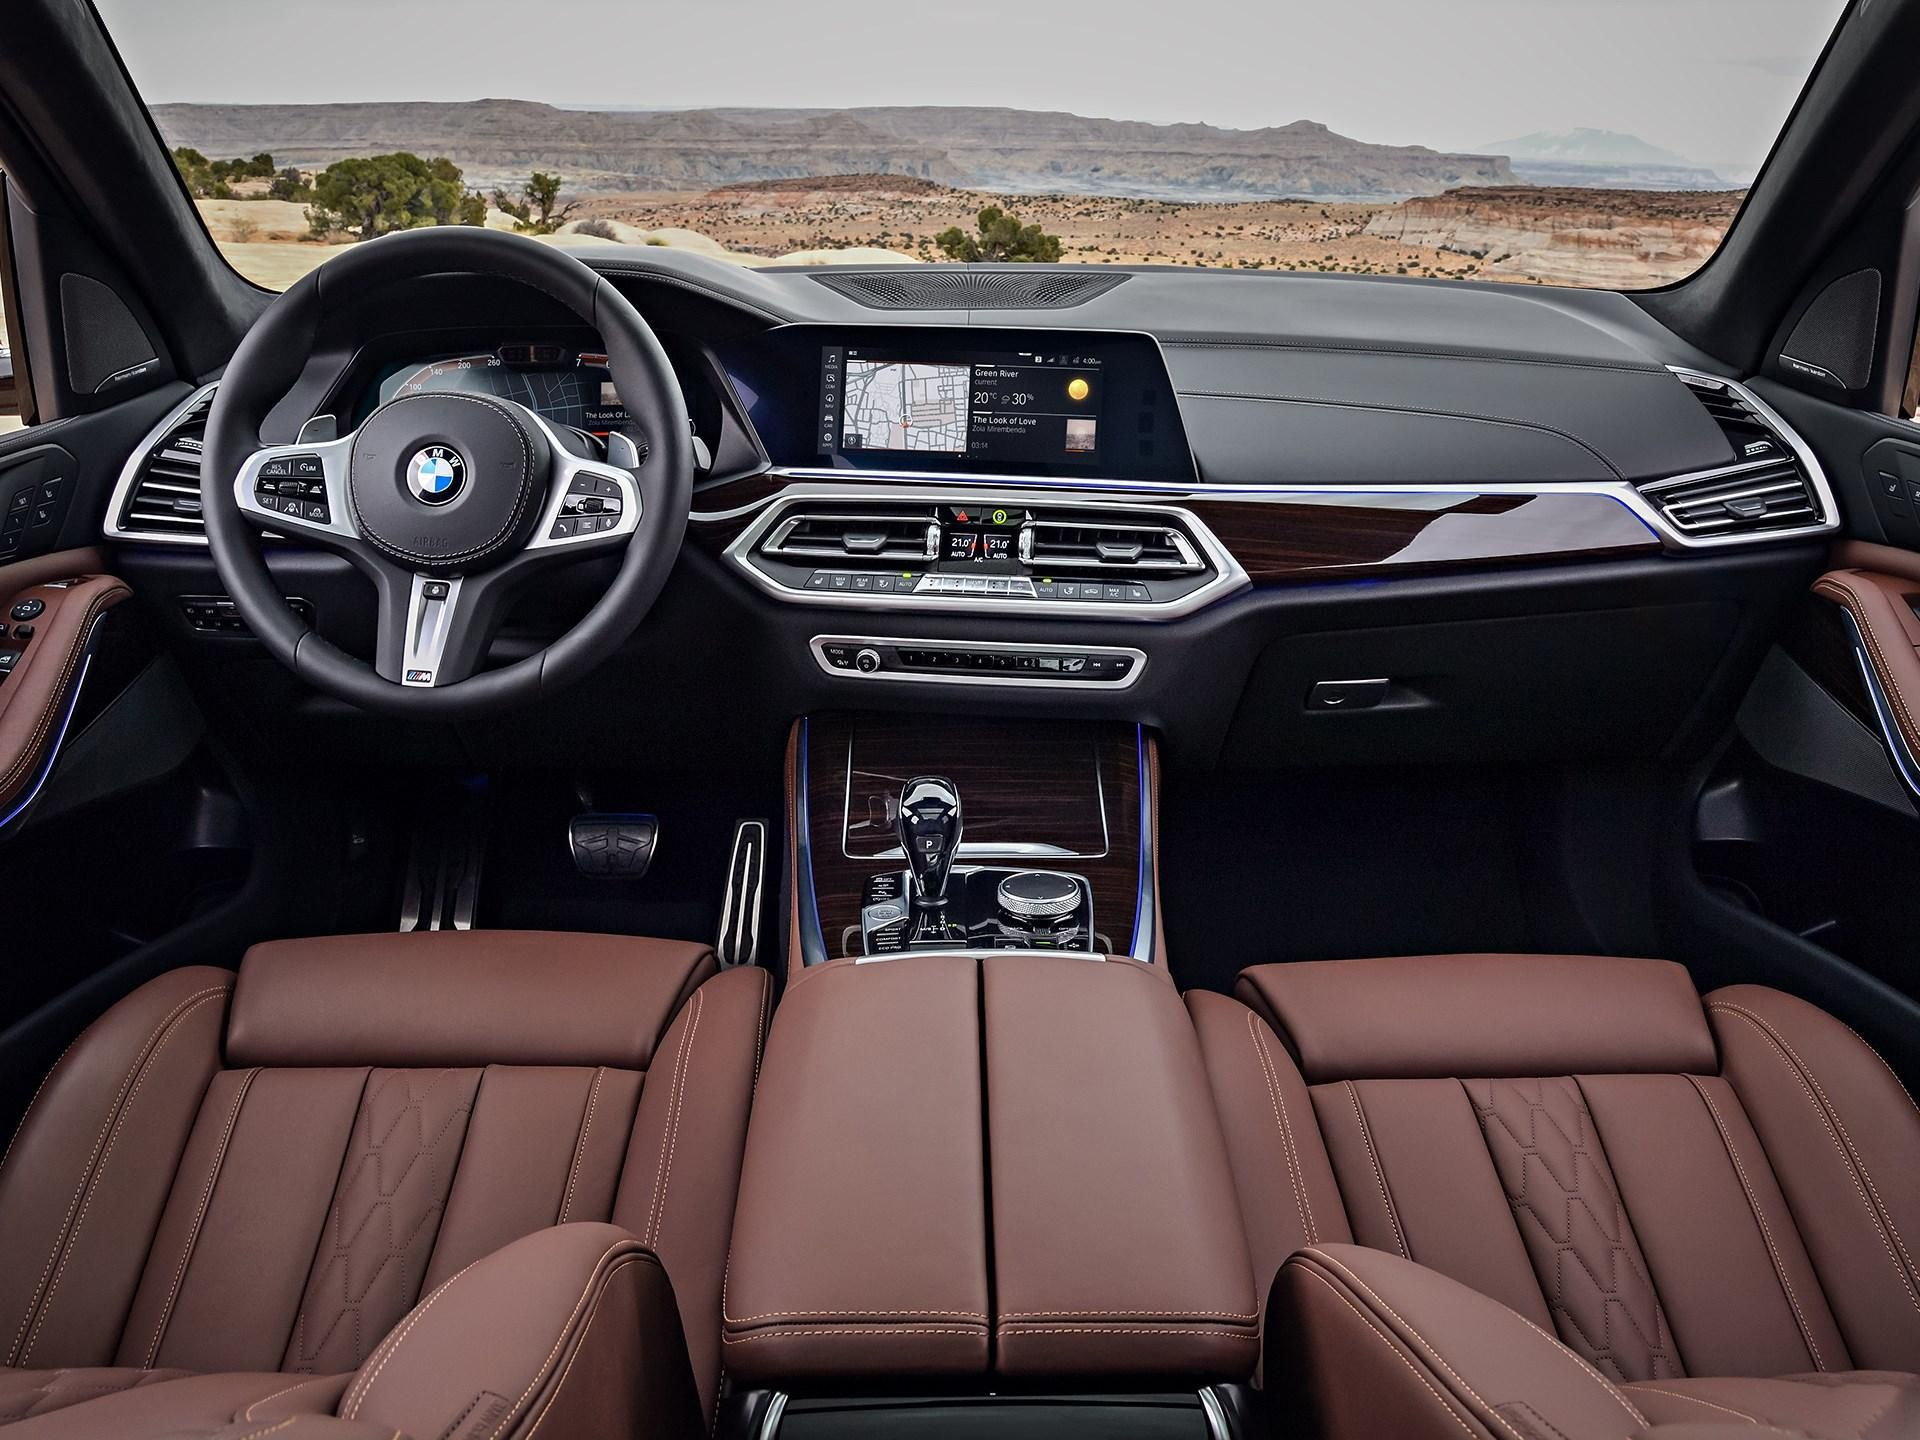 2019 Bmw X5 G05 This Is It First Official Photos Carscoops Bmw Suv Bmw X5 Bmw Interior